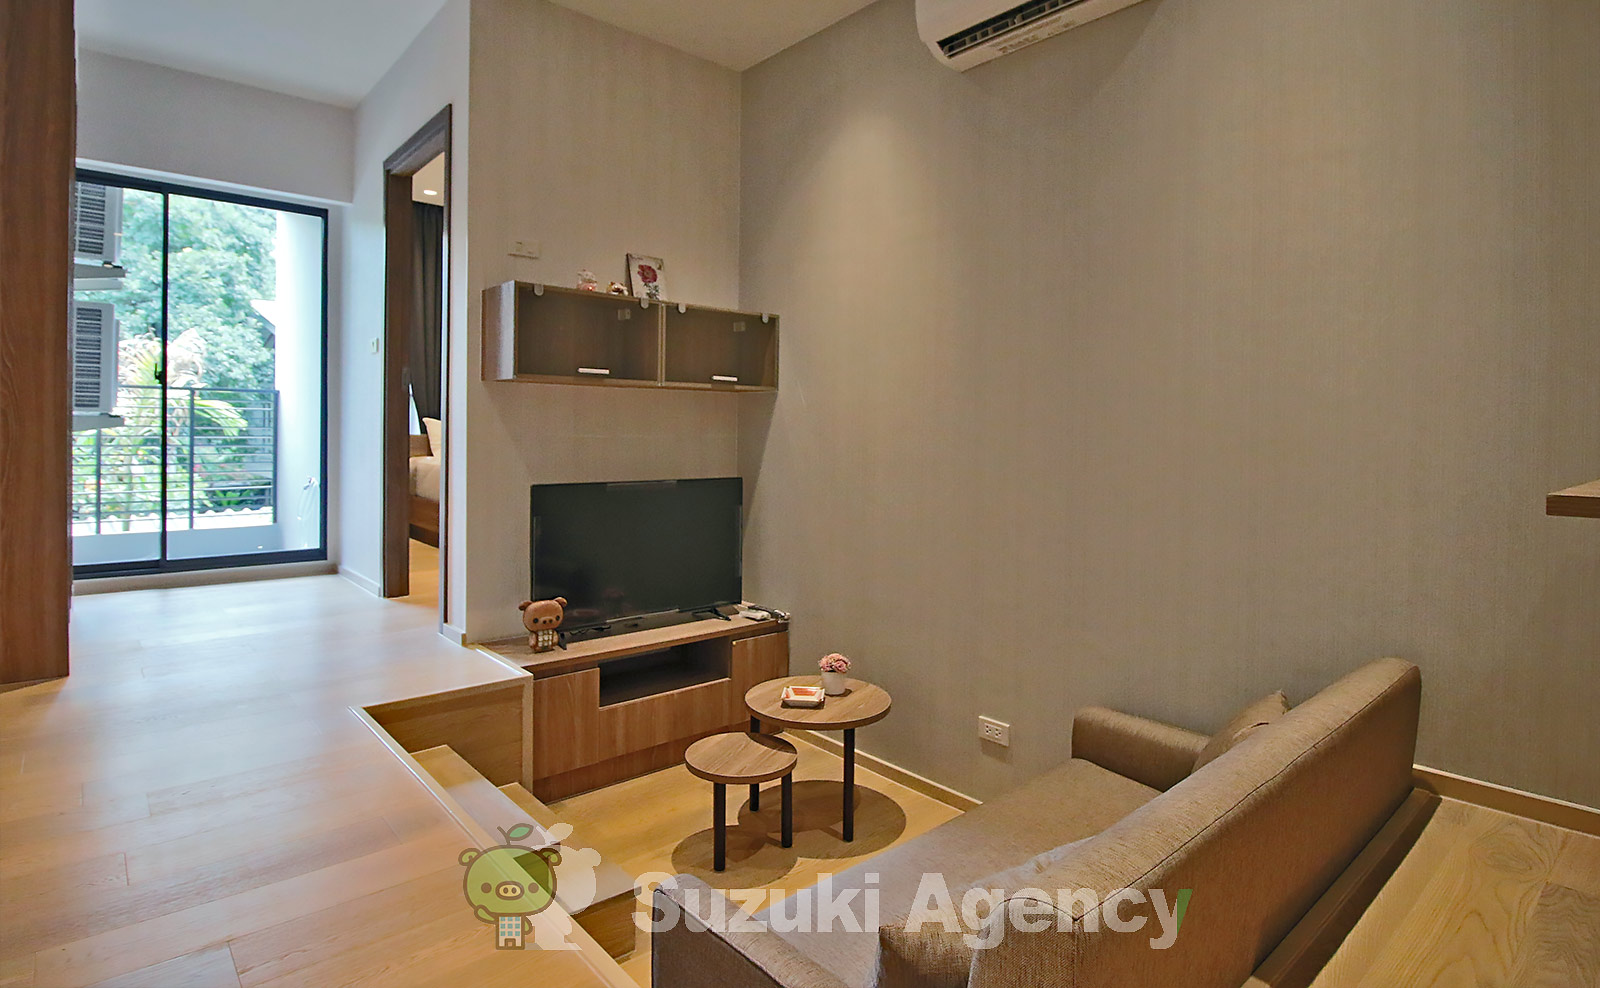 Runesu Thonglor 5:1Bed Room Photos No.2